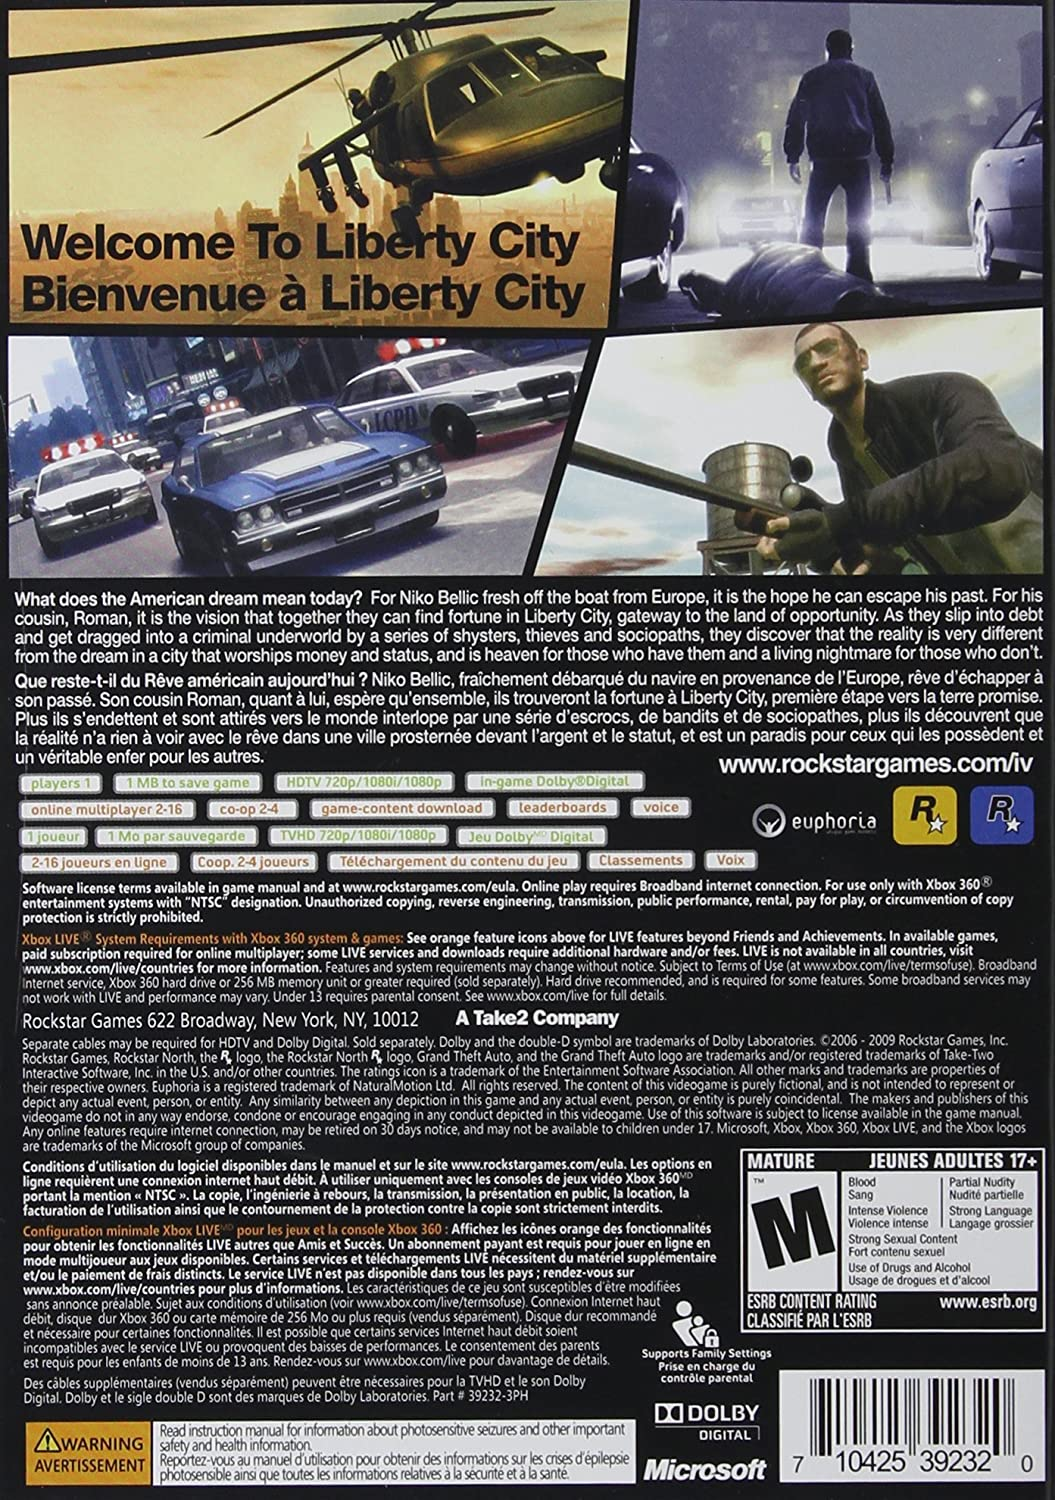 Pics photos grand theft auto iv the law breaking spree continues - Amazon Com Grand Theft Auto Iv Xbox 360 Artist Not Provided Video Games